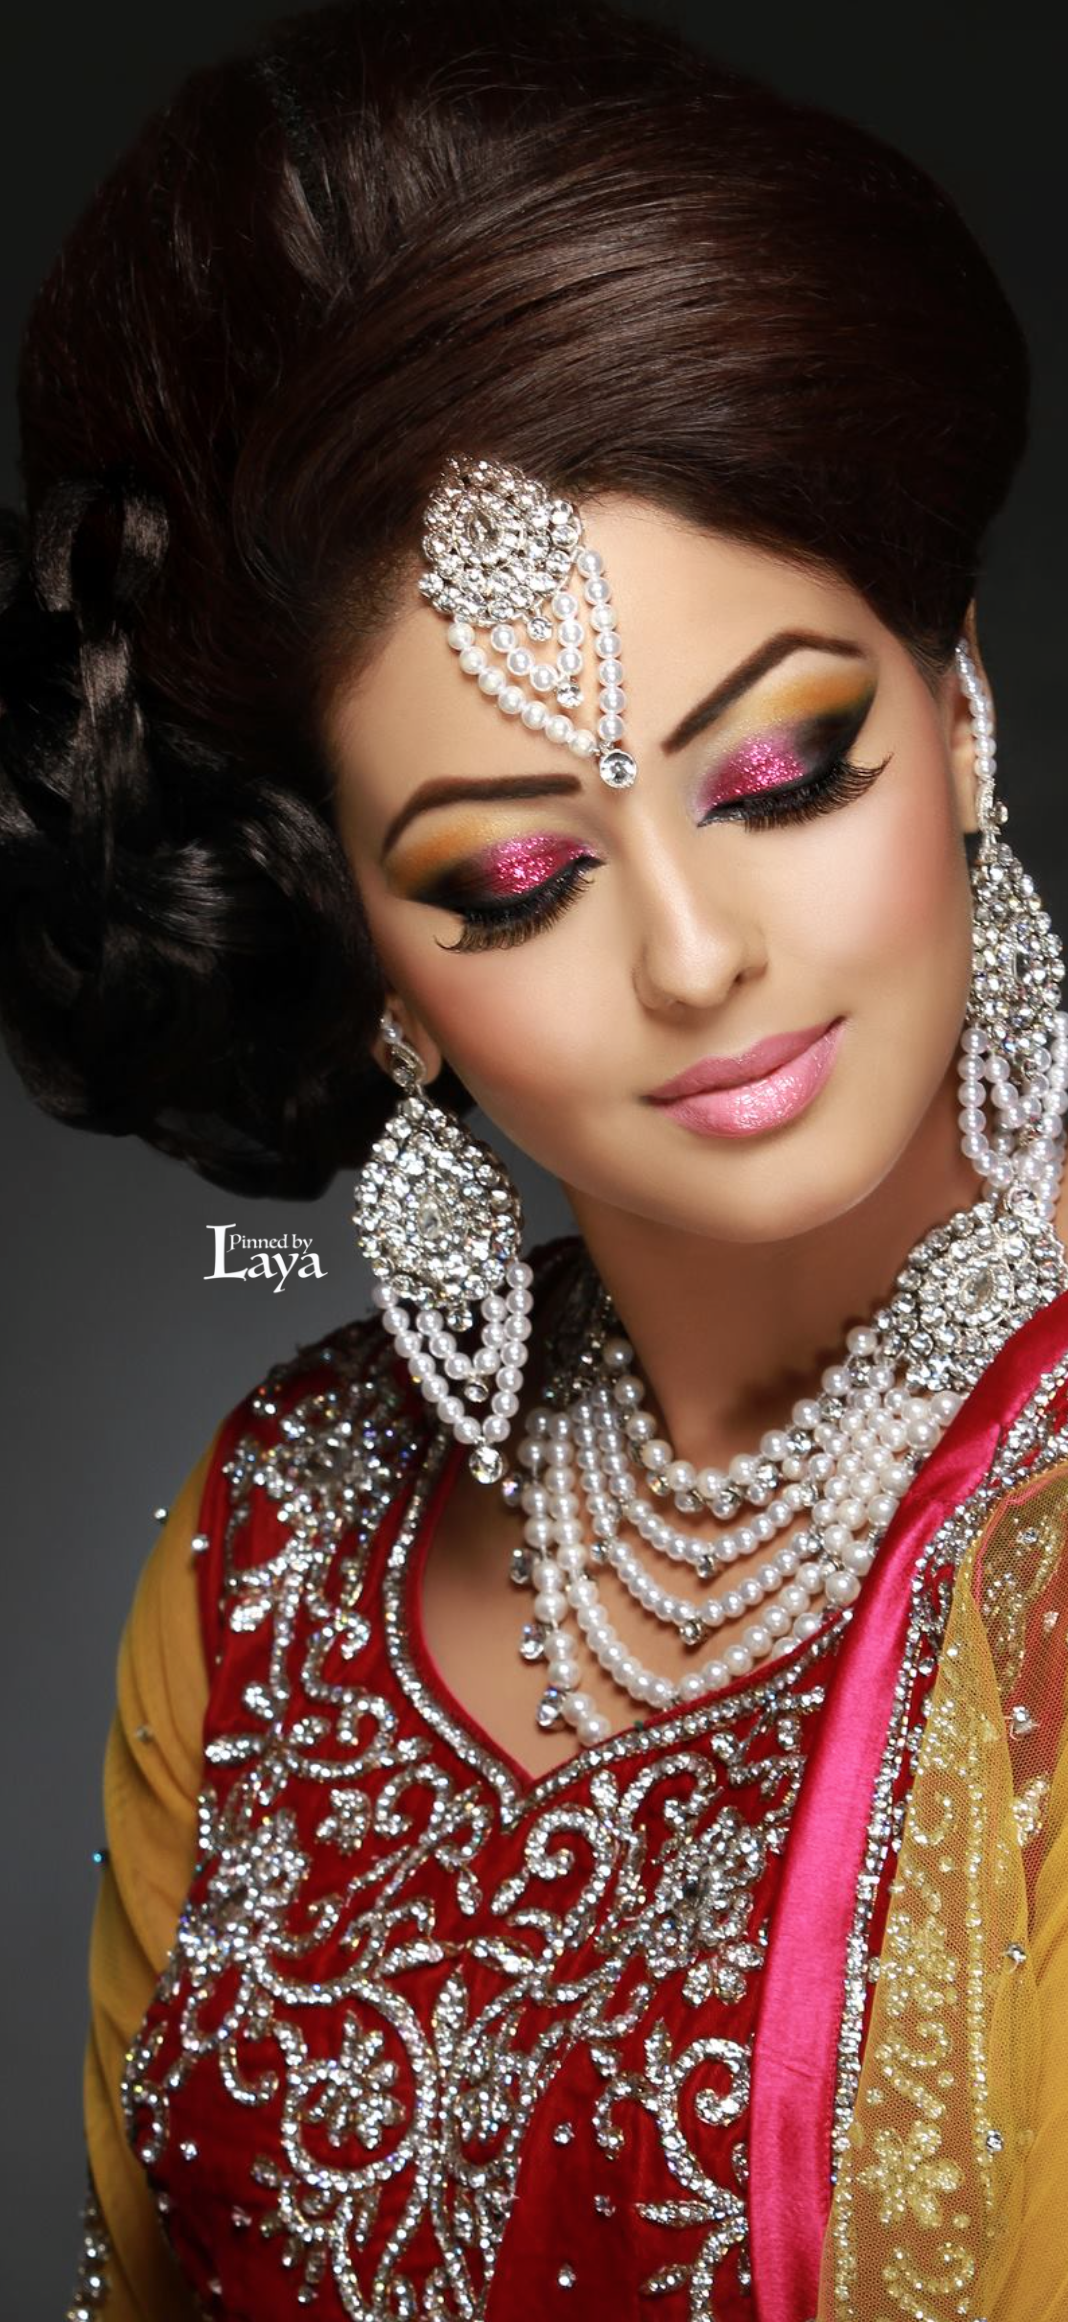 Worst makeup mistakes on your wedding indian bridal diaries - It S Not All A Sweet Dreams I Am Really Going To Get Married